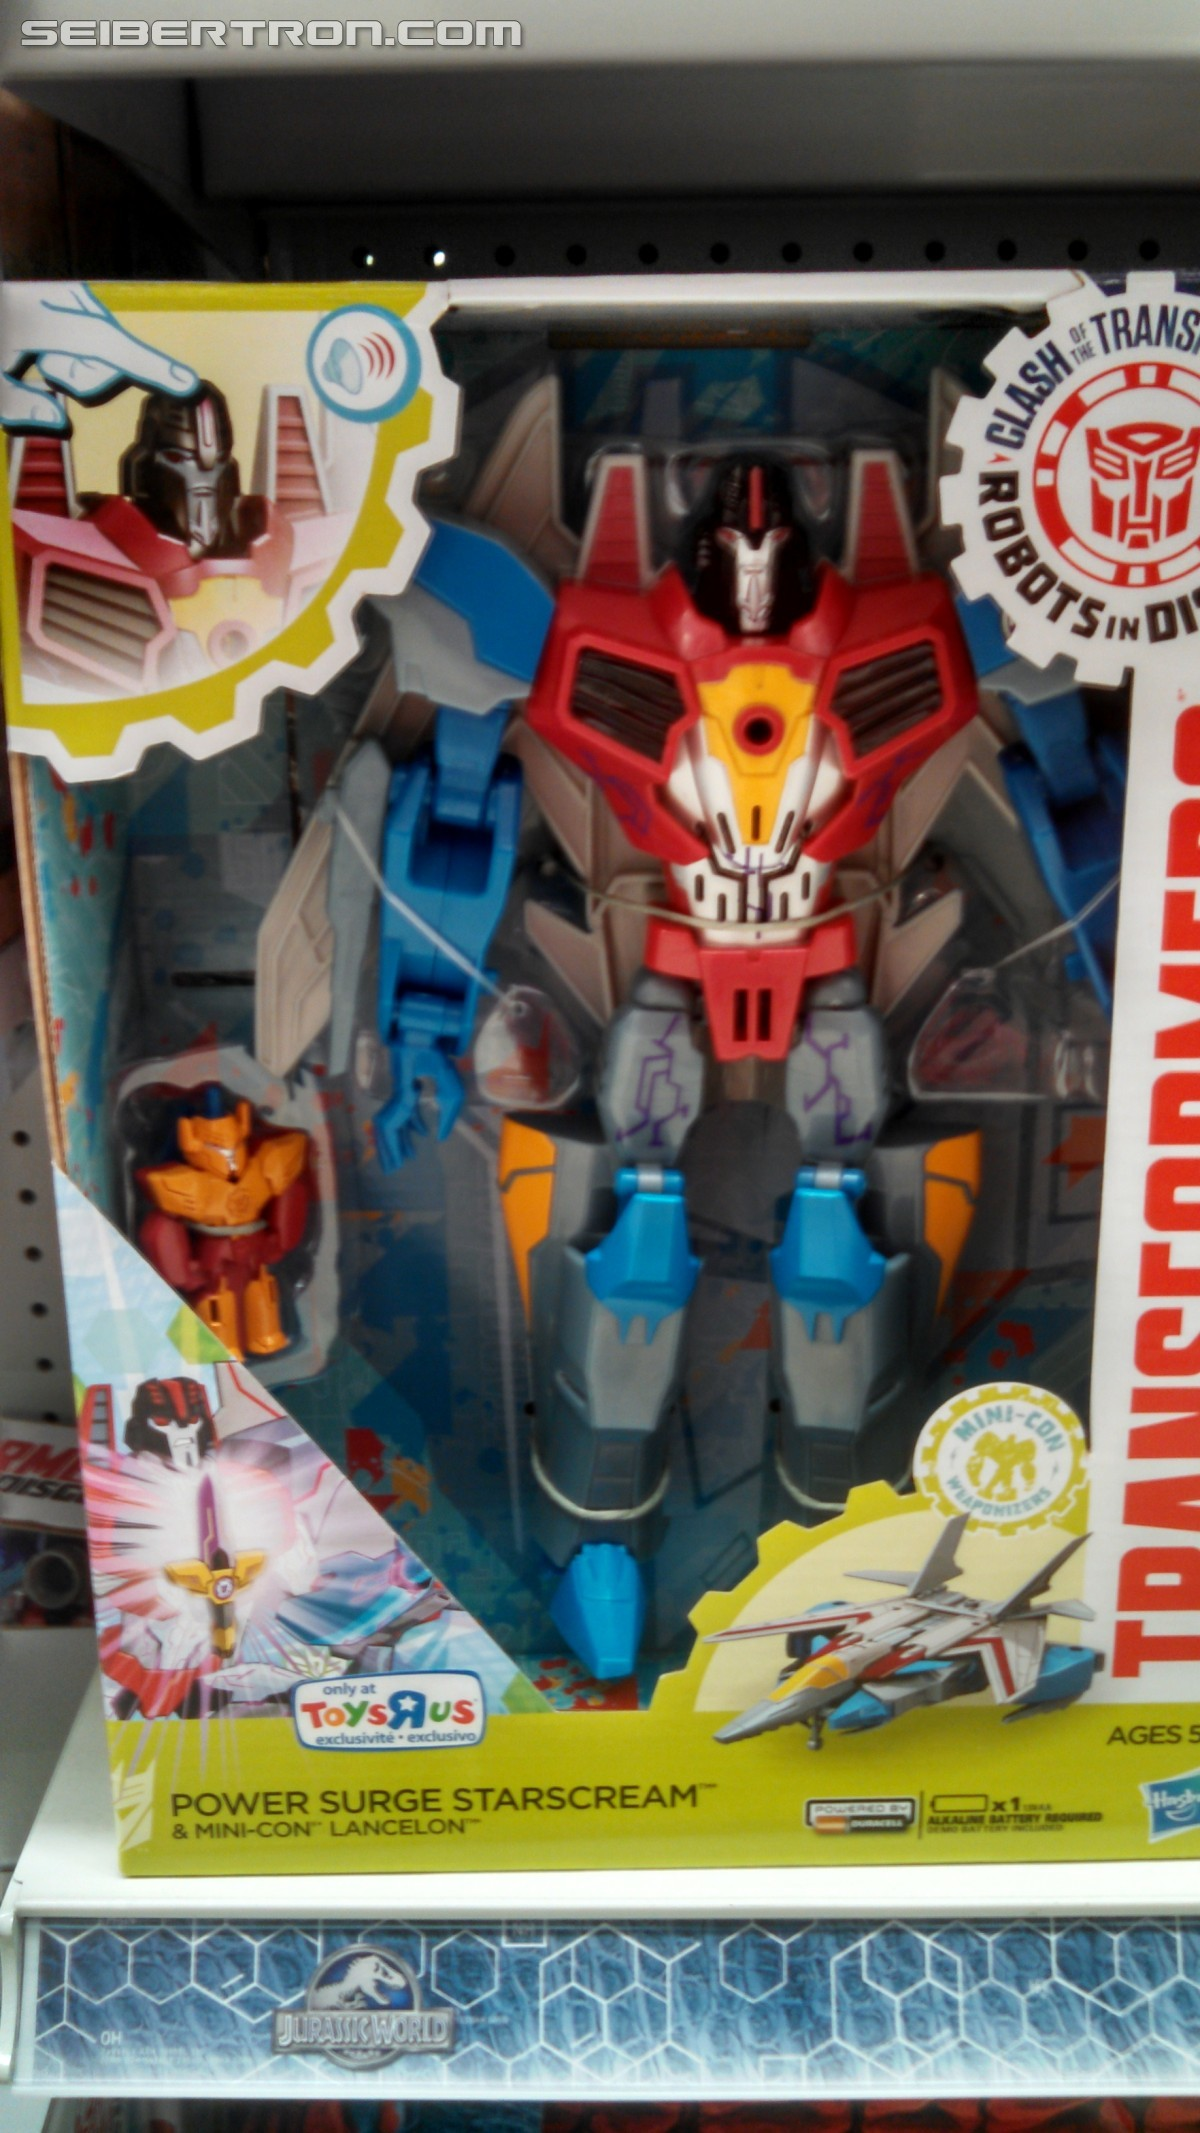 Transformers News: Transformers: Robots in Disguise Power Surge Starscream, Deluxe Optimus, Paralon, Starscream at US